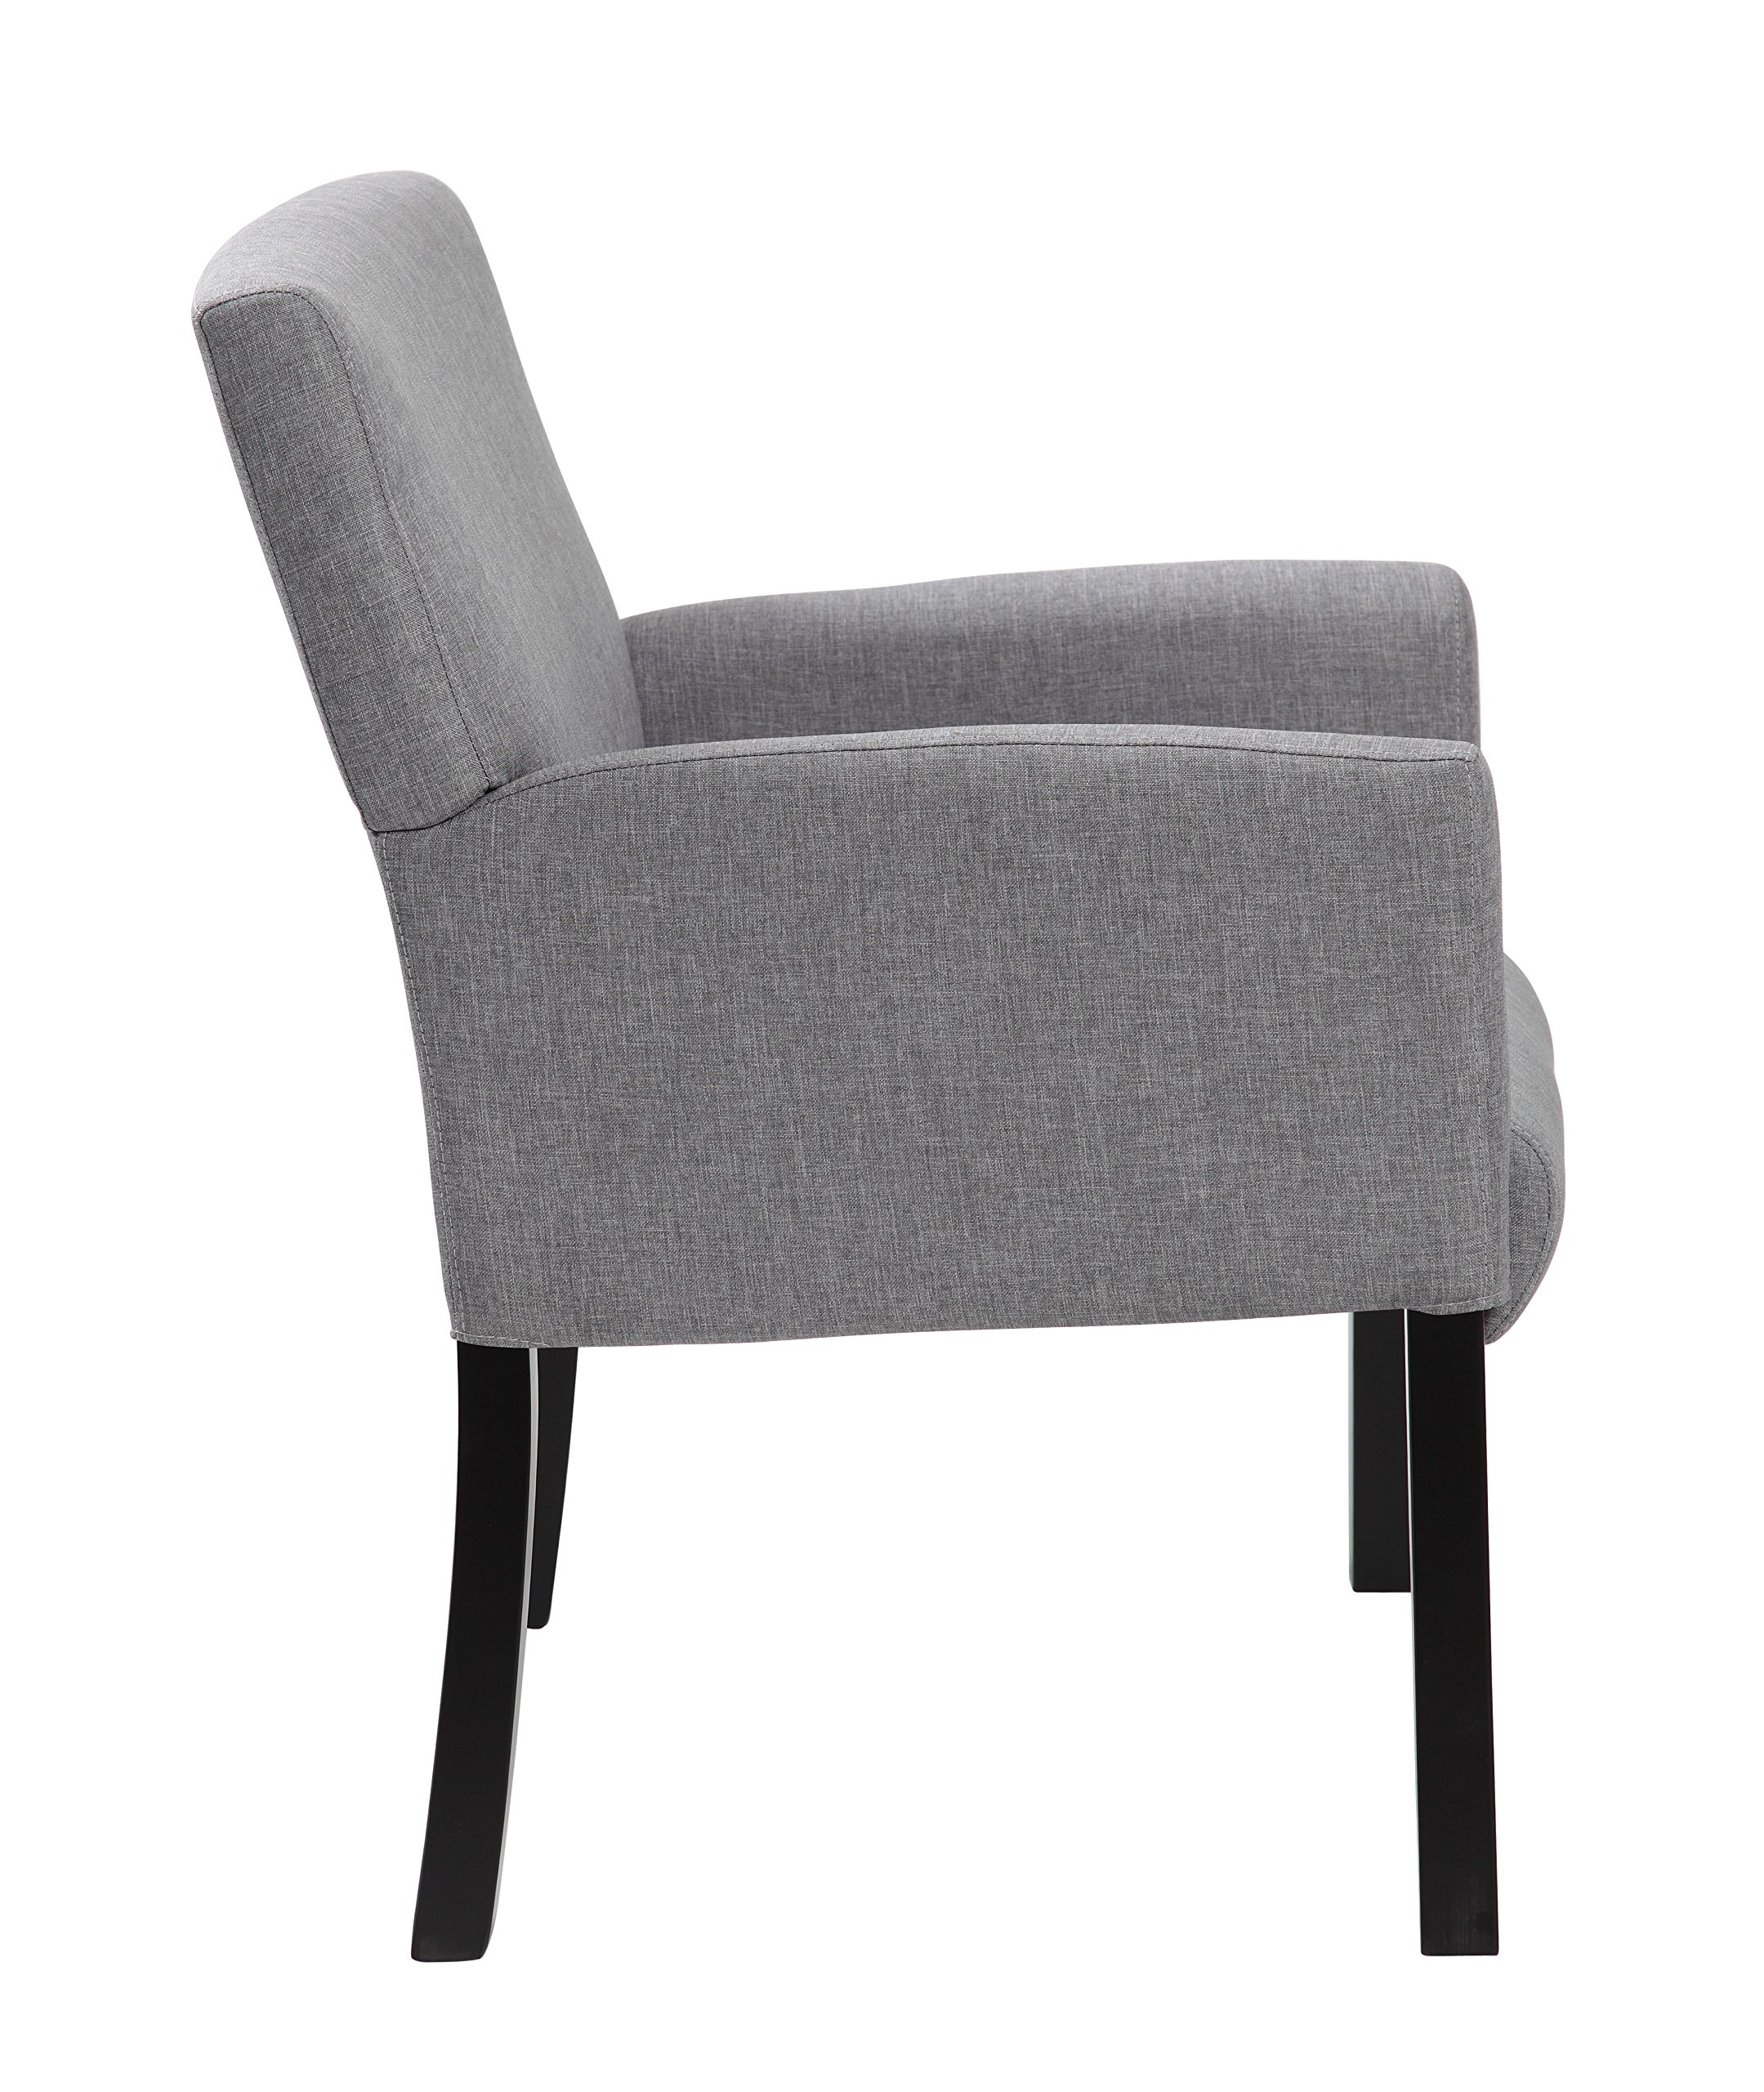 Boss Office Products B659-MG Contemporary Guest Chair in Grey by Boss Office Products (Image #3)